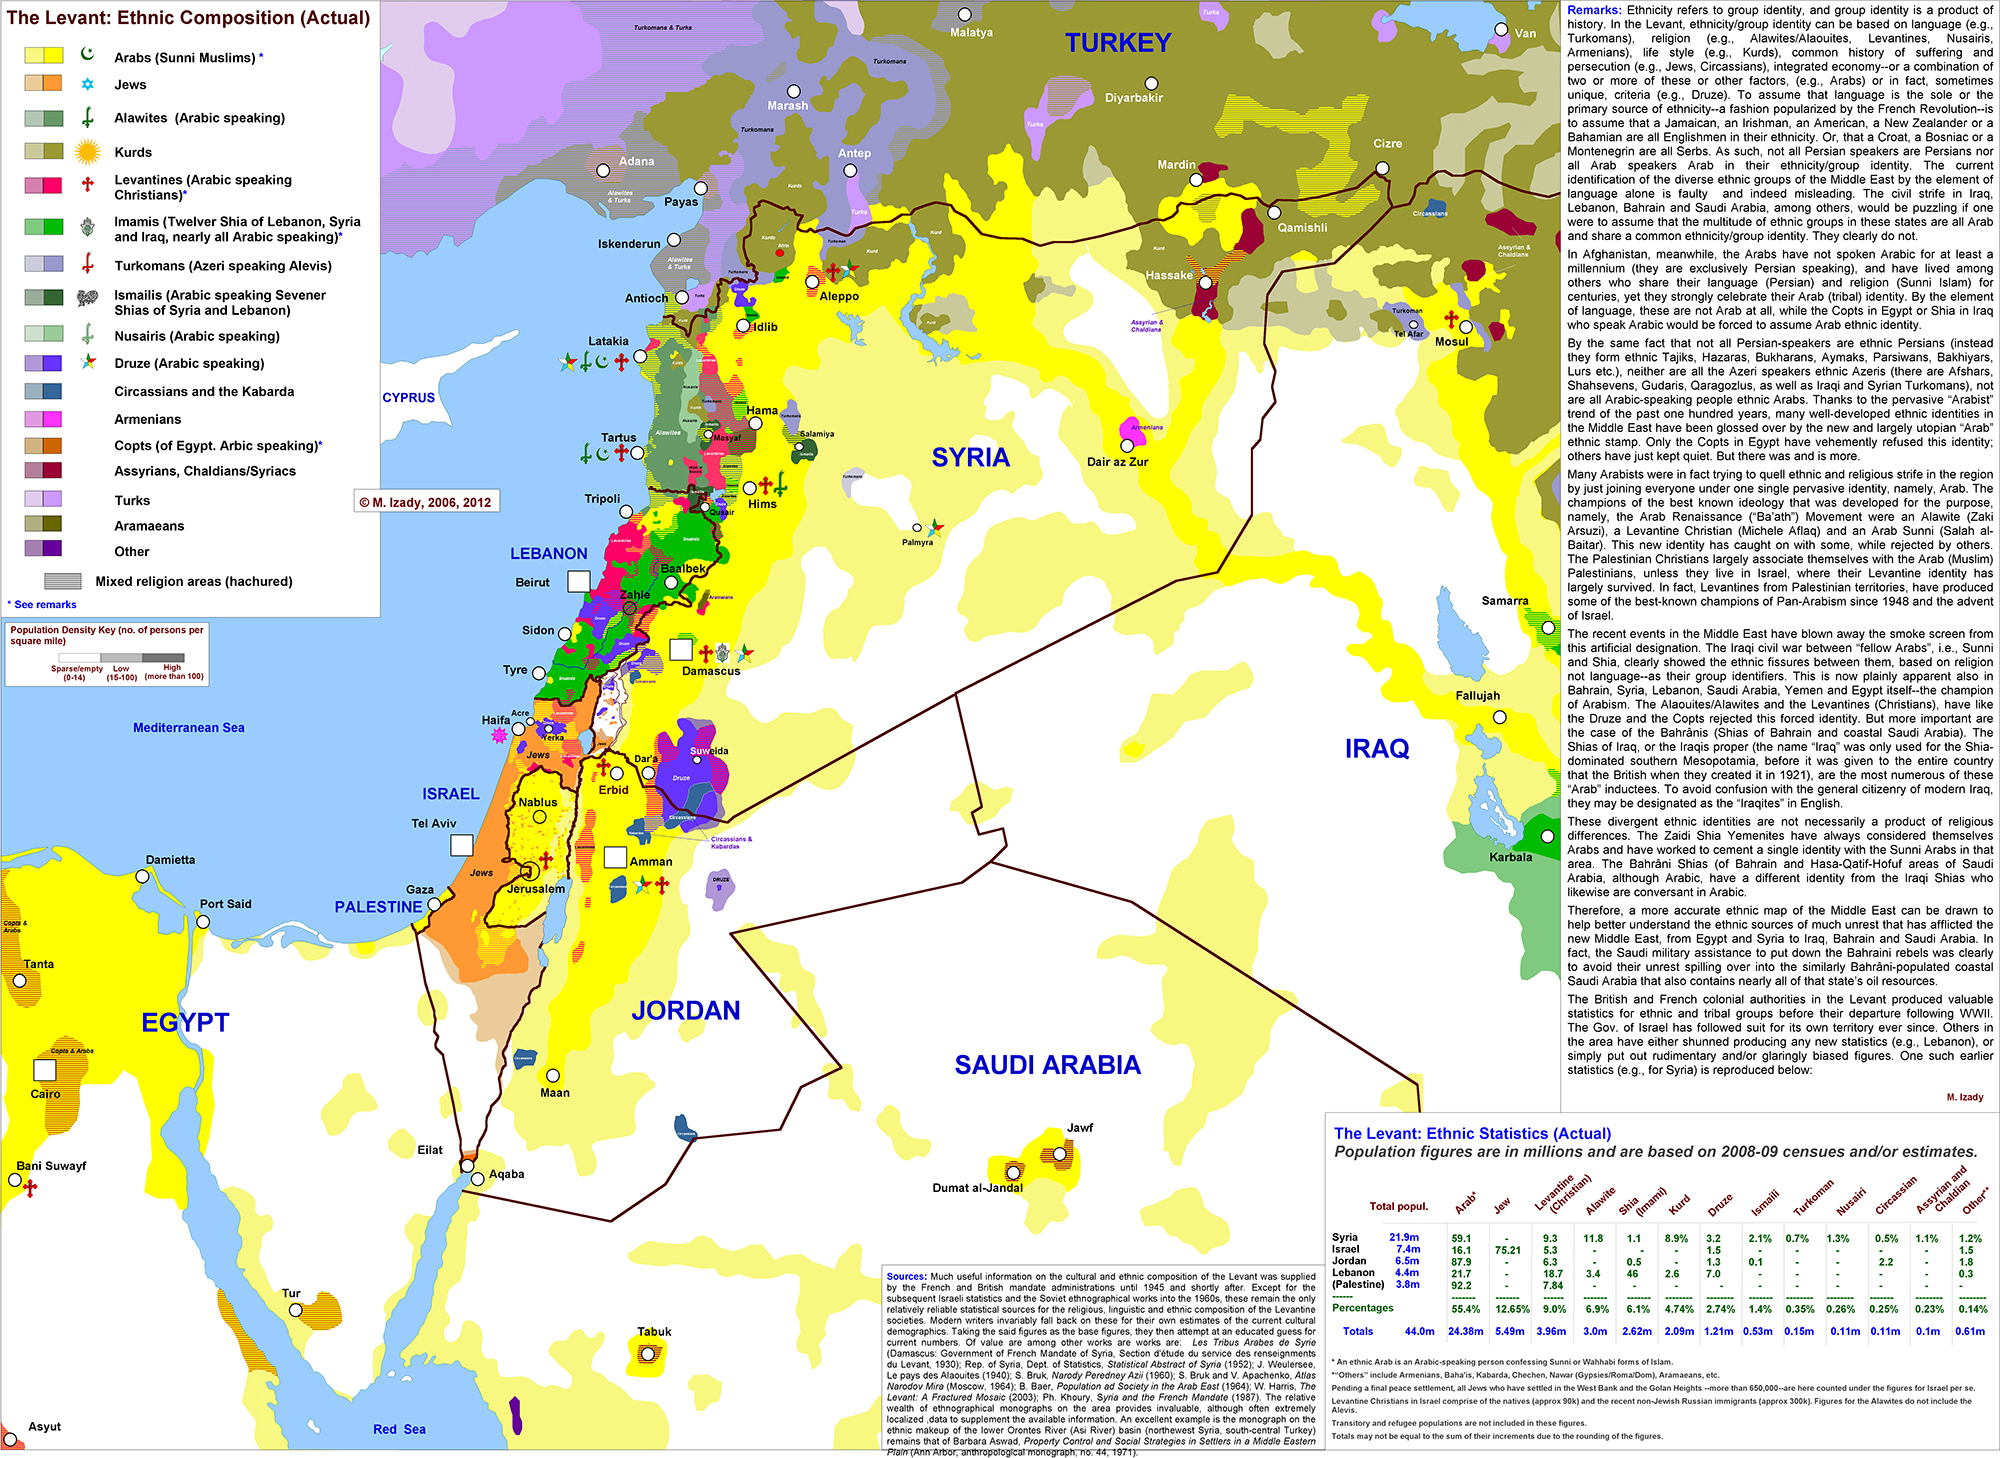 Click to enlarge. Each color represents an ethnic or religious group. (The Gulf